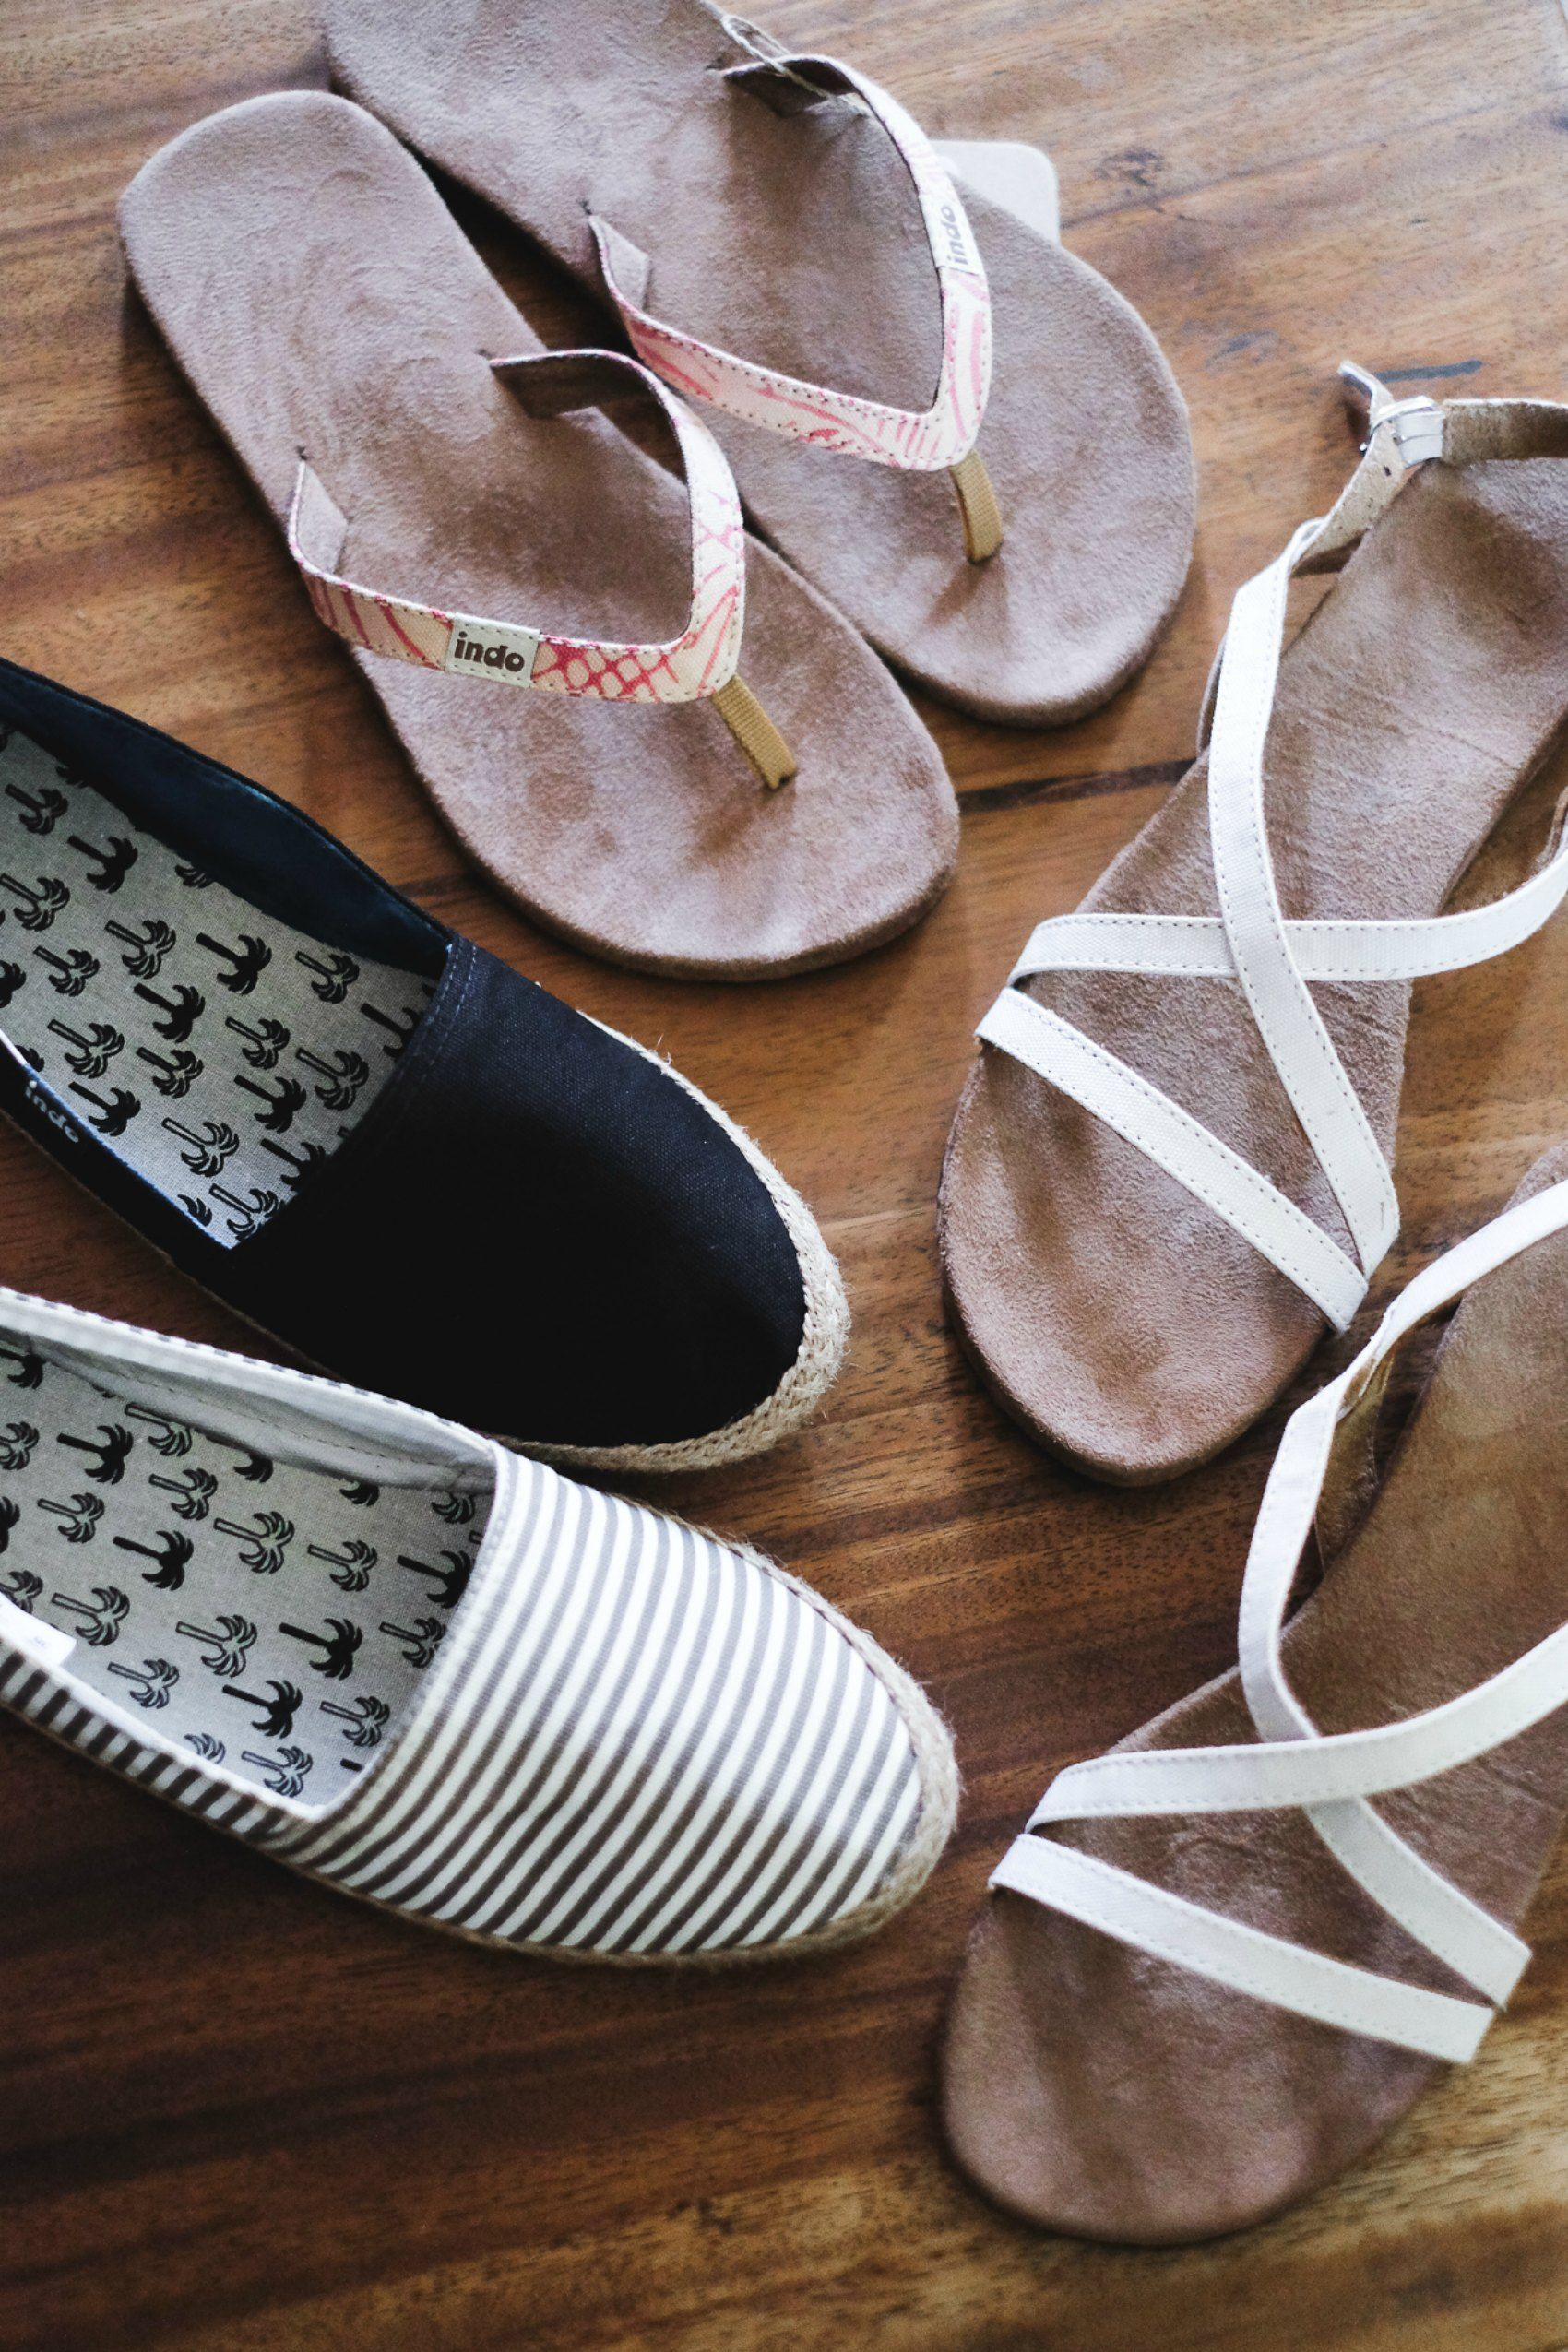 Eco Sandals with a Purpose by Indosole | Fashion, Ethical